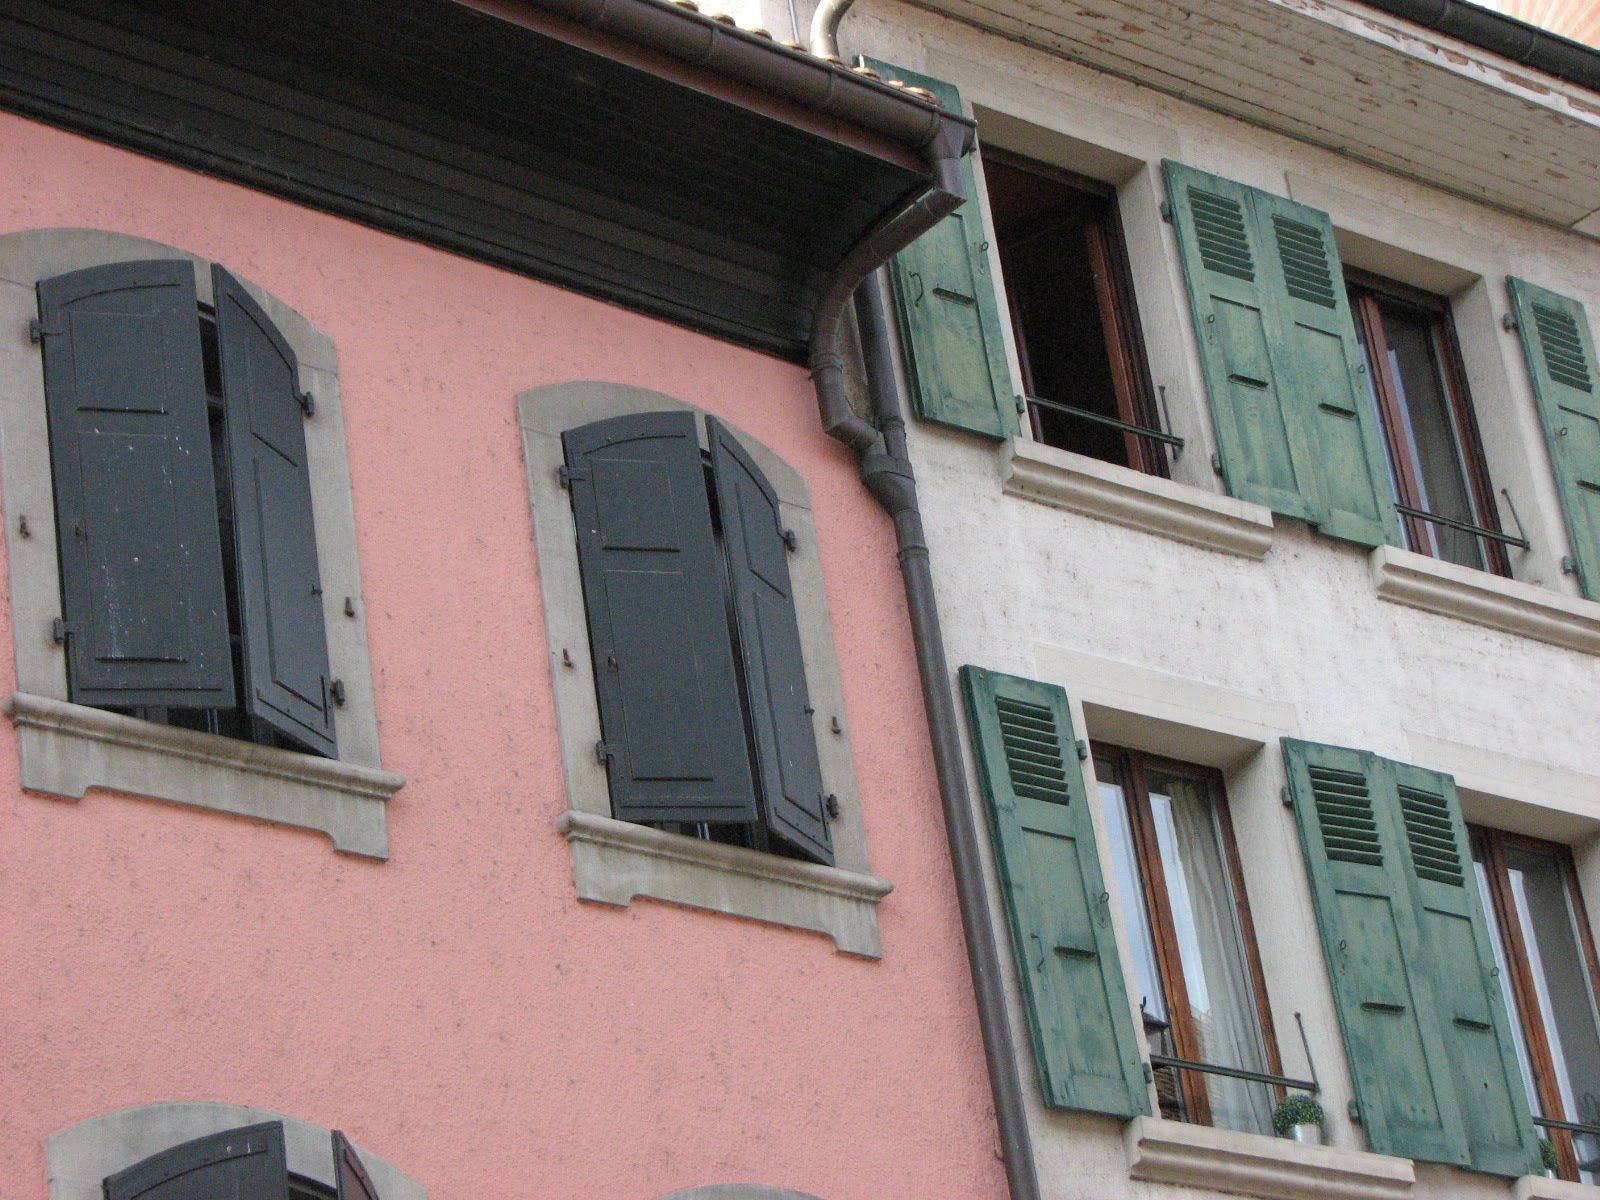 Mies, Switzerland, & Europe Too!: Swiss Windows: A Cultural Contrast ...